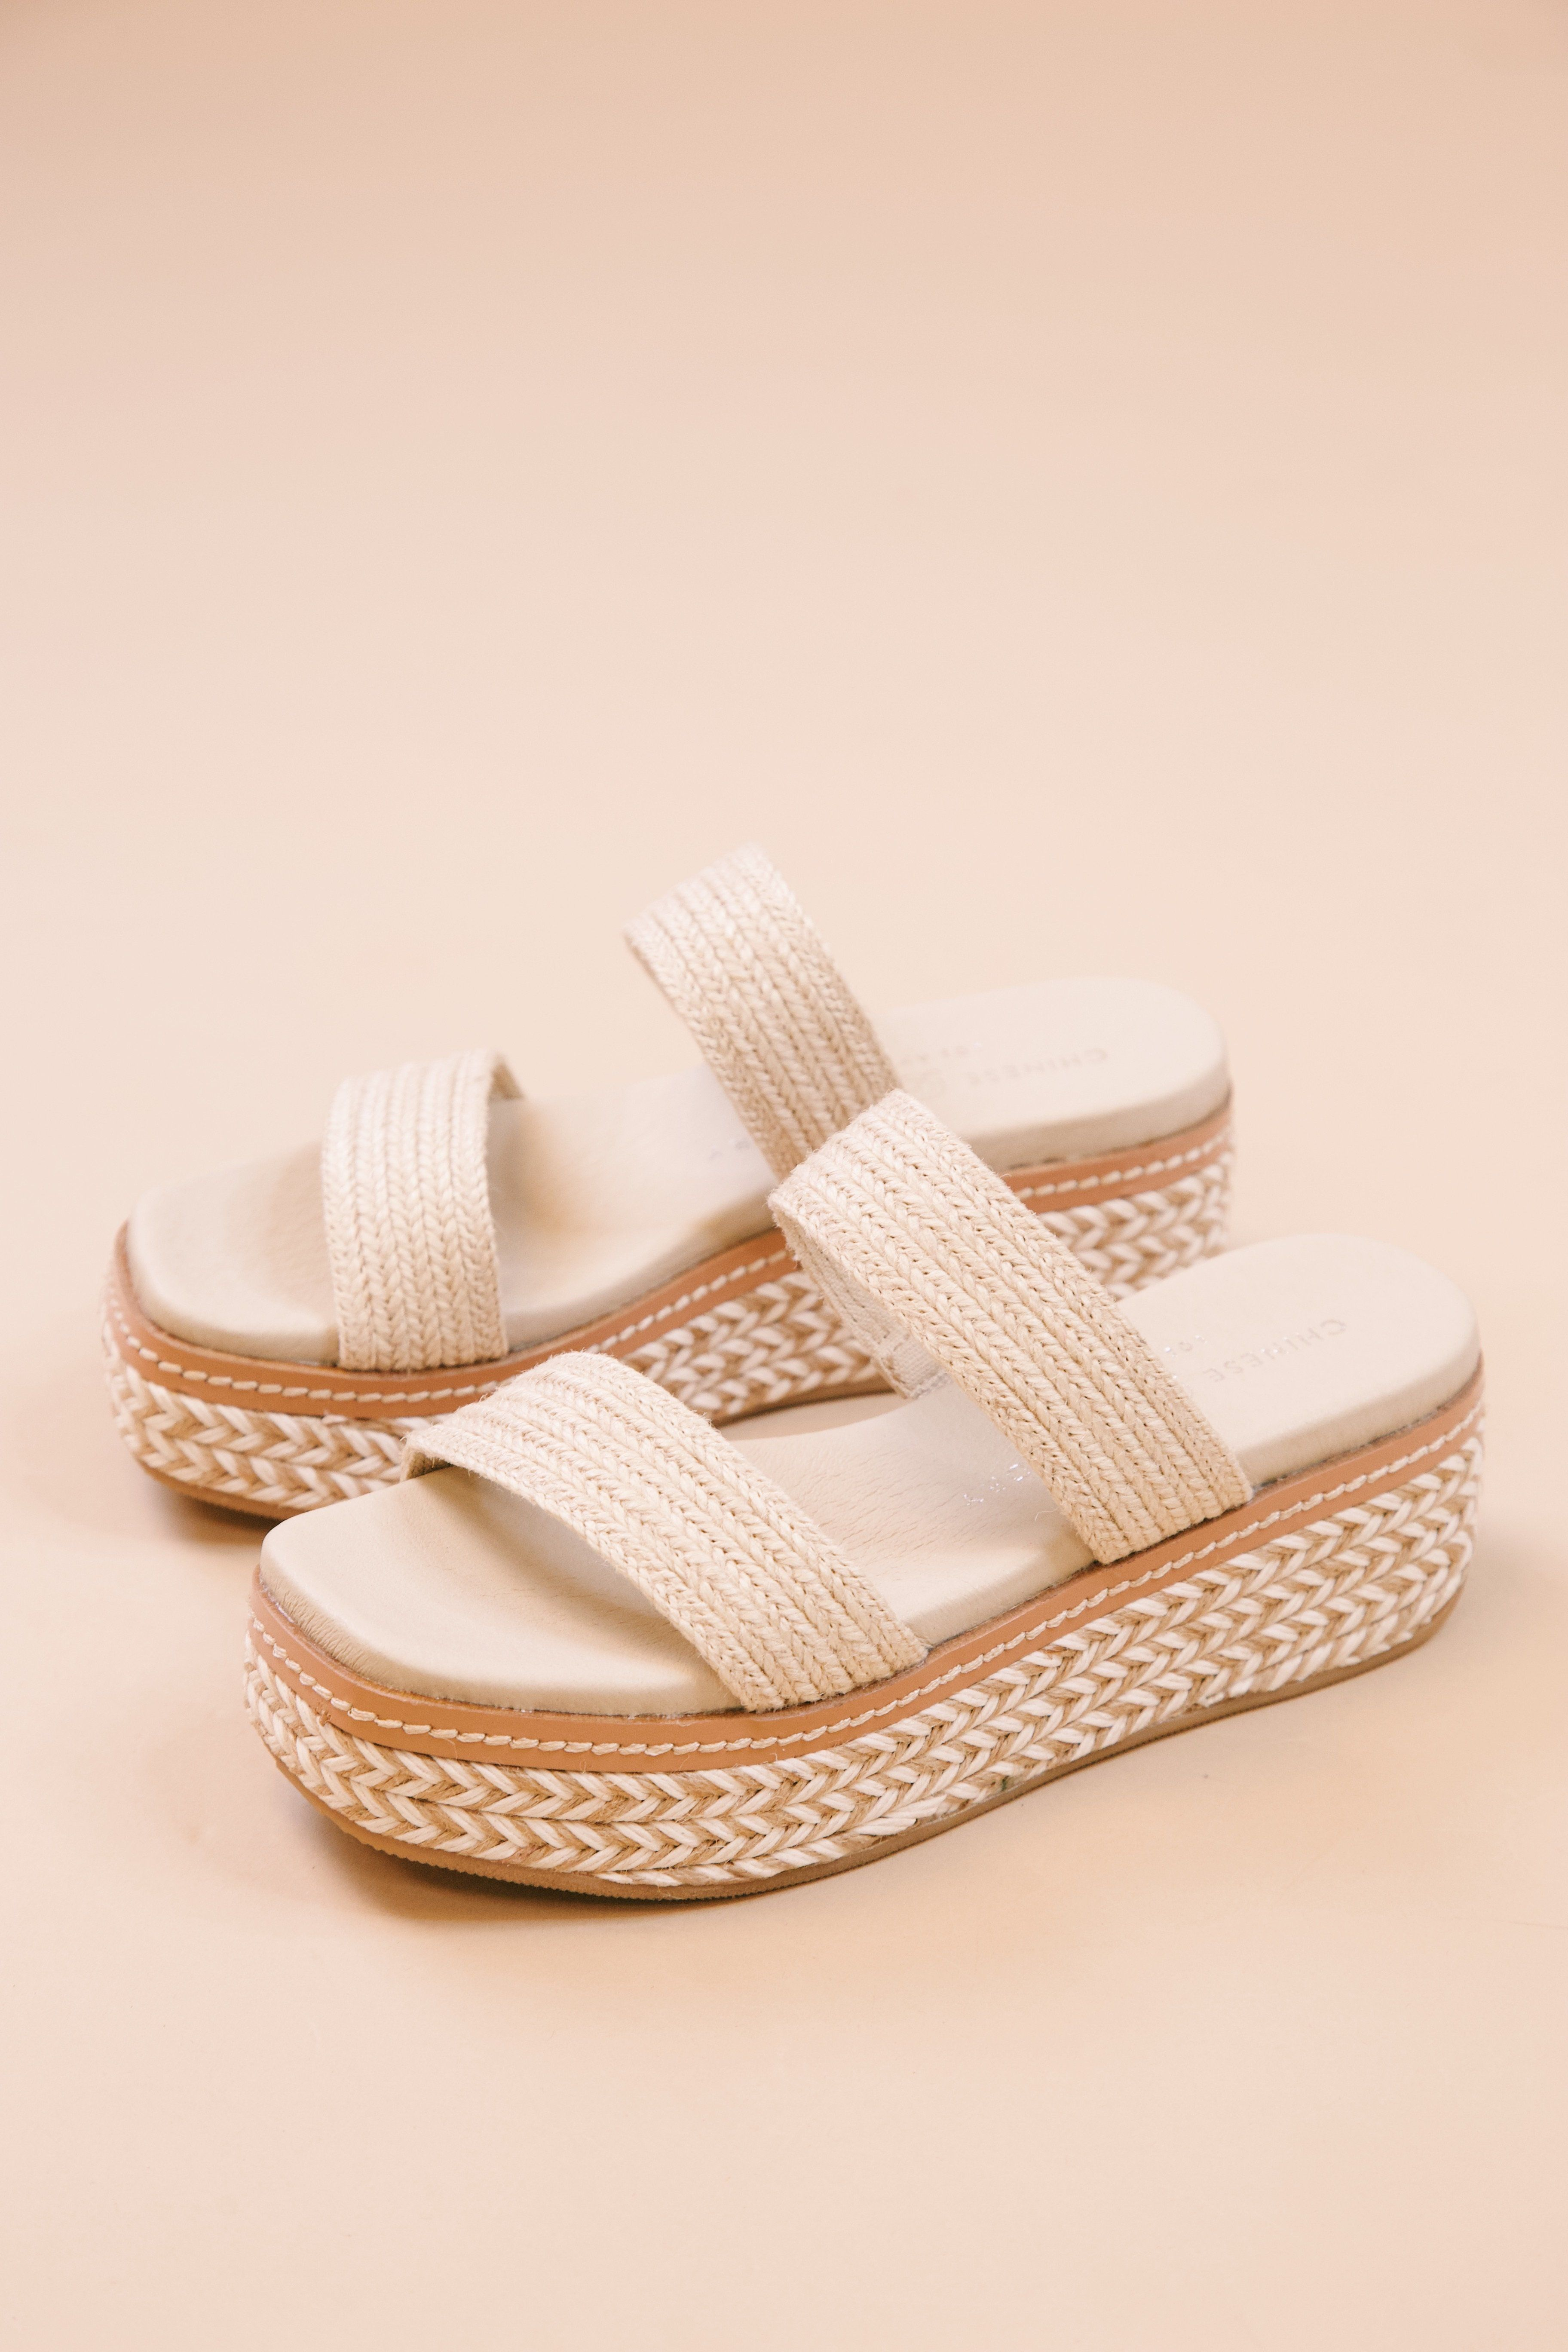 Zion Platform Sandal Cream Natural Chinese Laundry In 2020